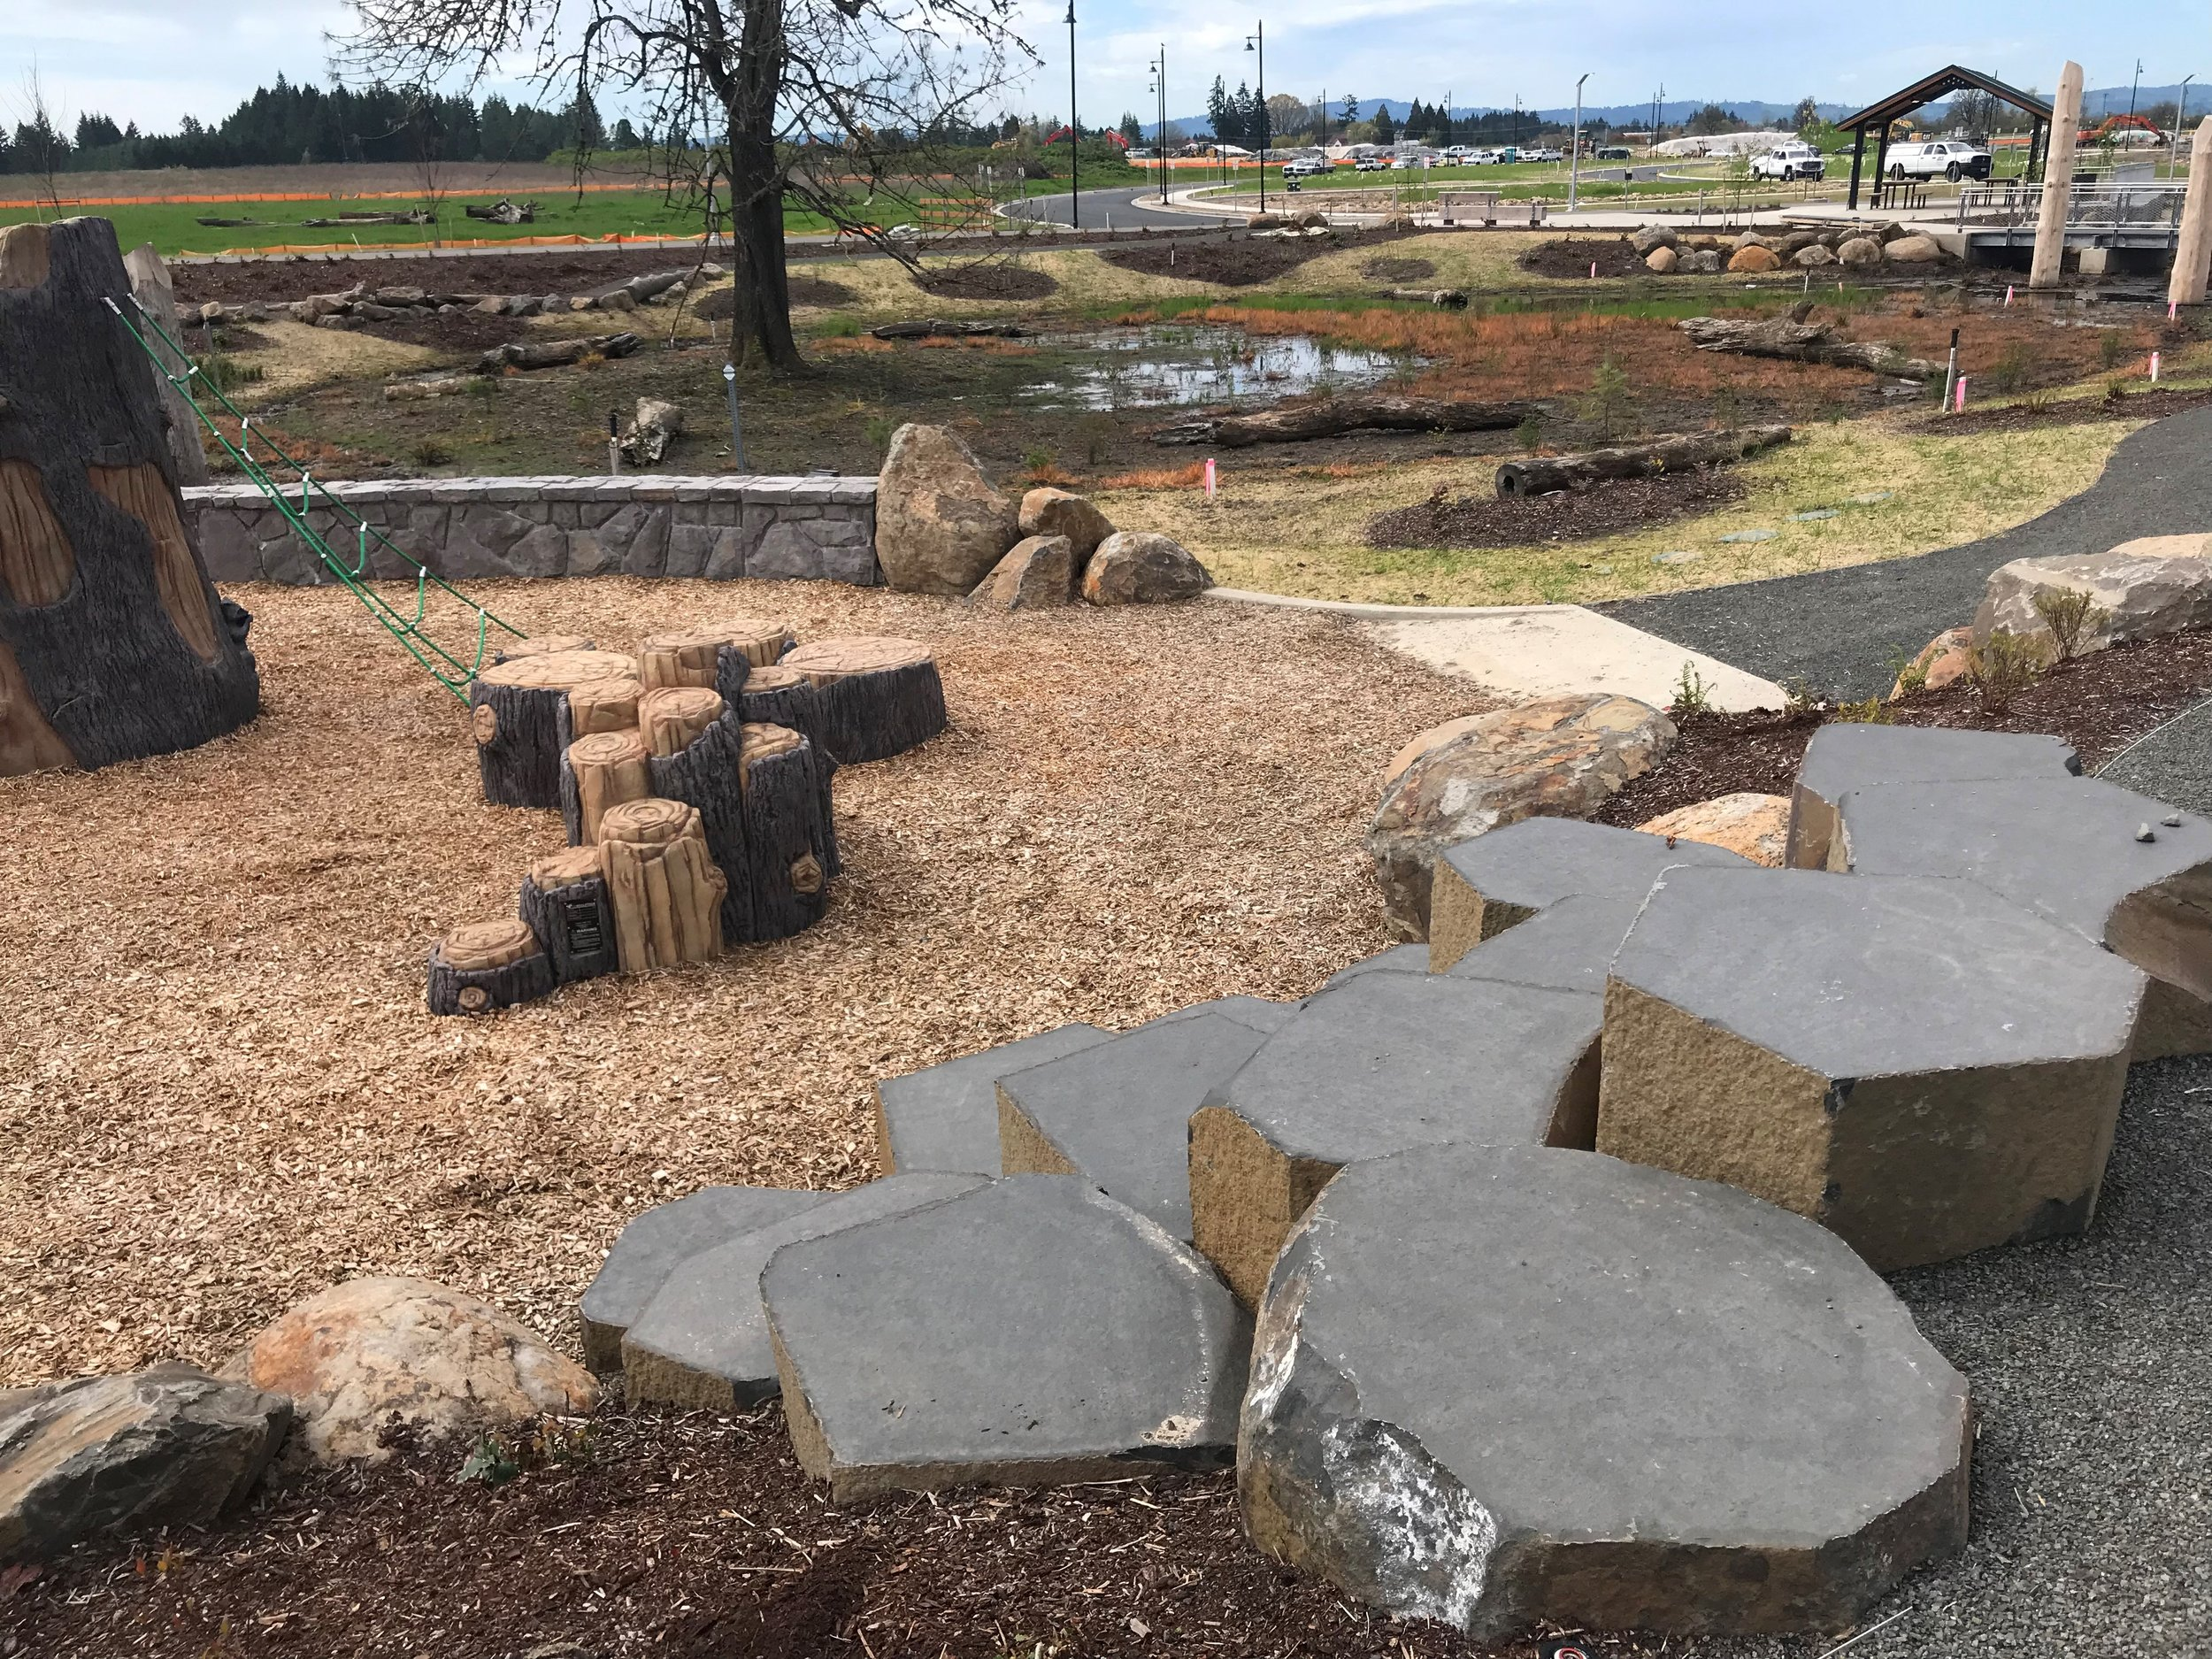 Basalt columns in front of wood chips and nature play area